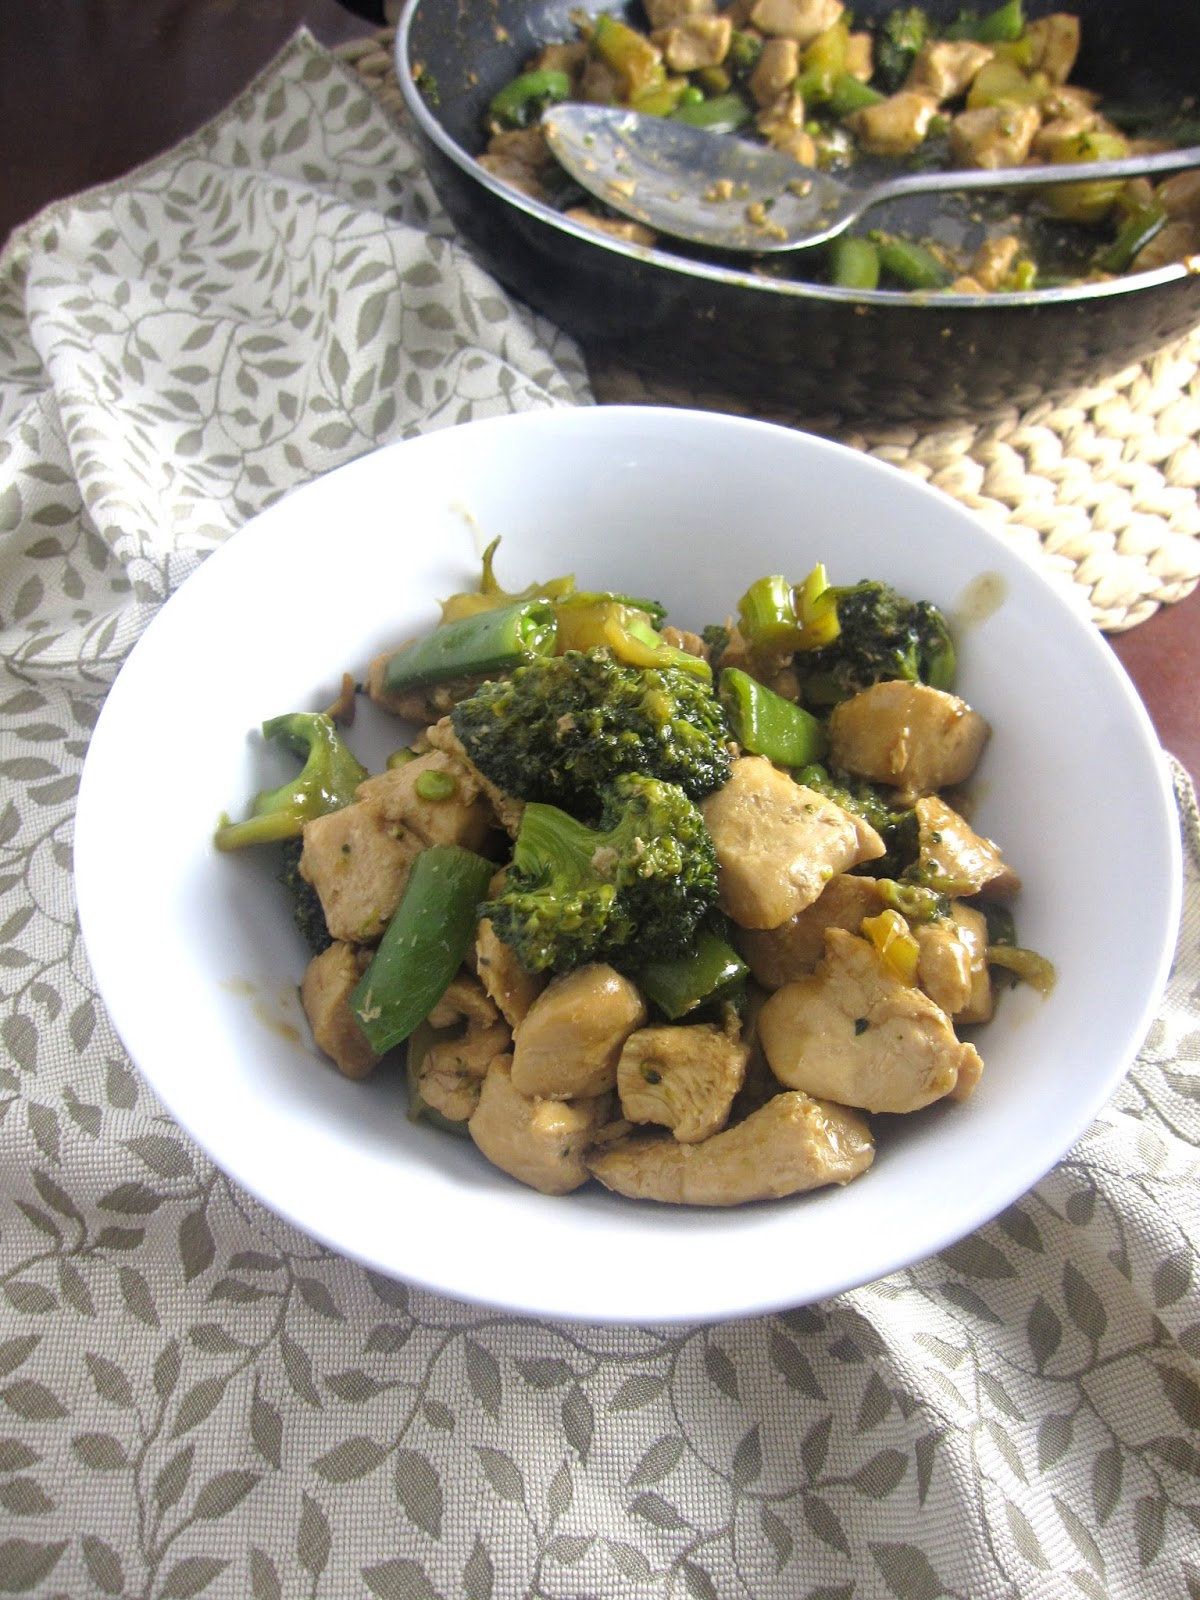 Chicken, Broccoli and Snap Peas Stir Fry